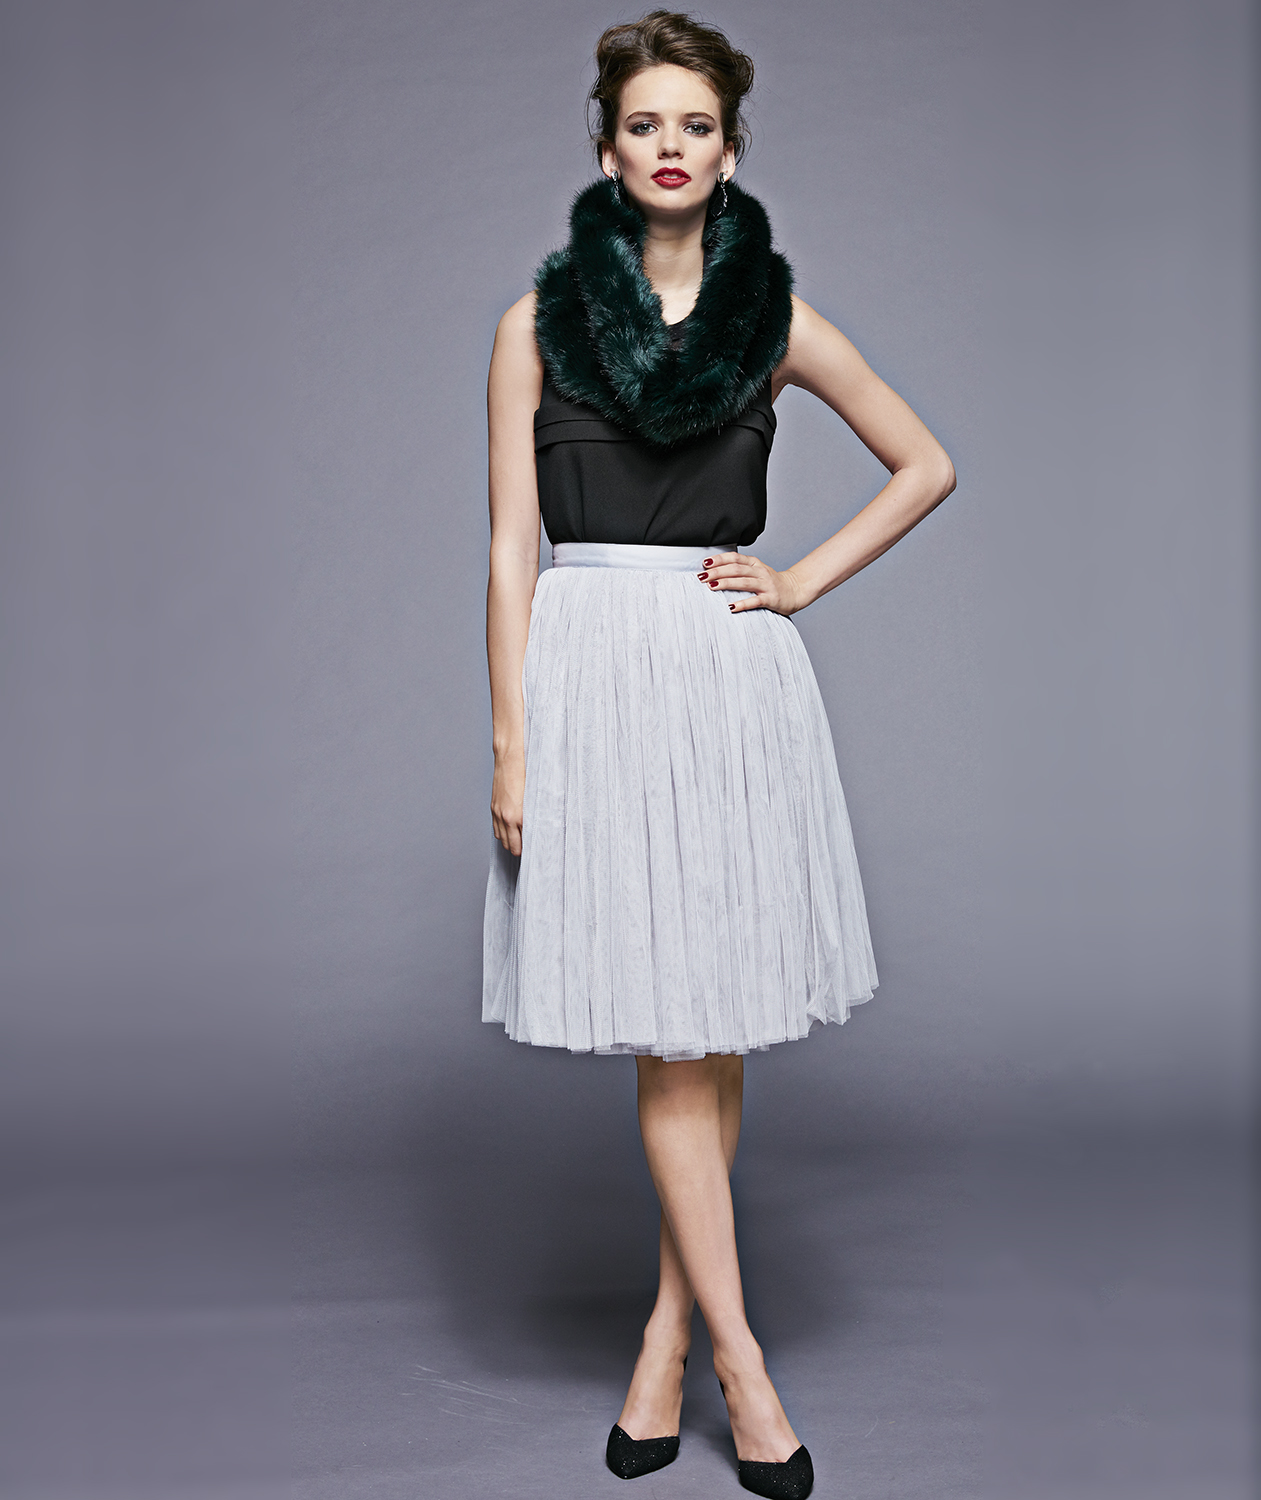 Model with green faux fur stole and gray skirt